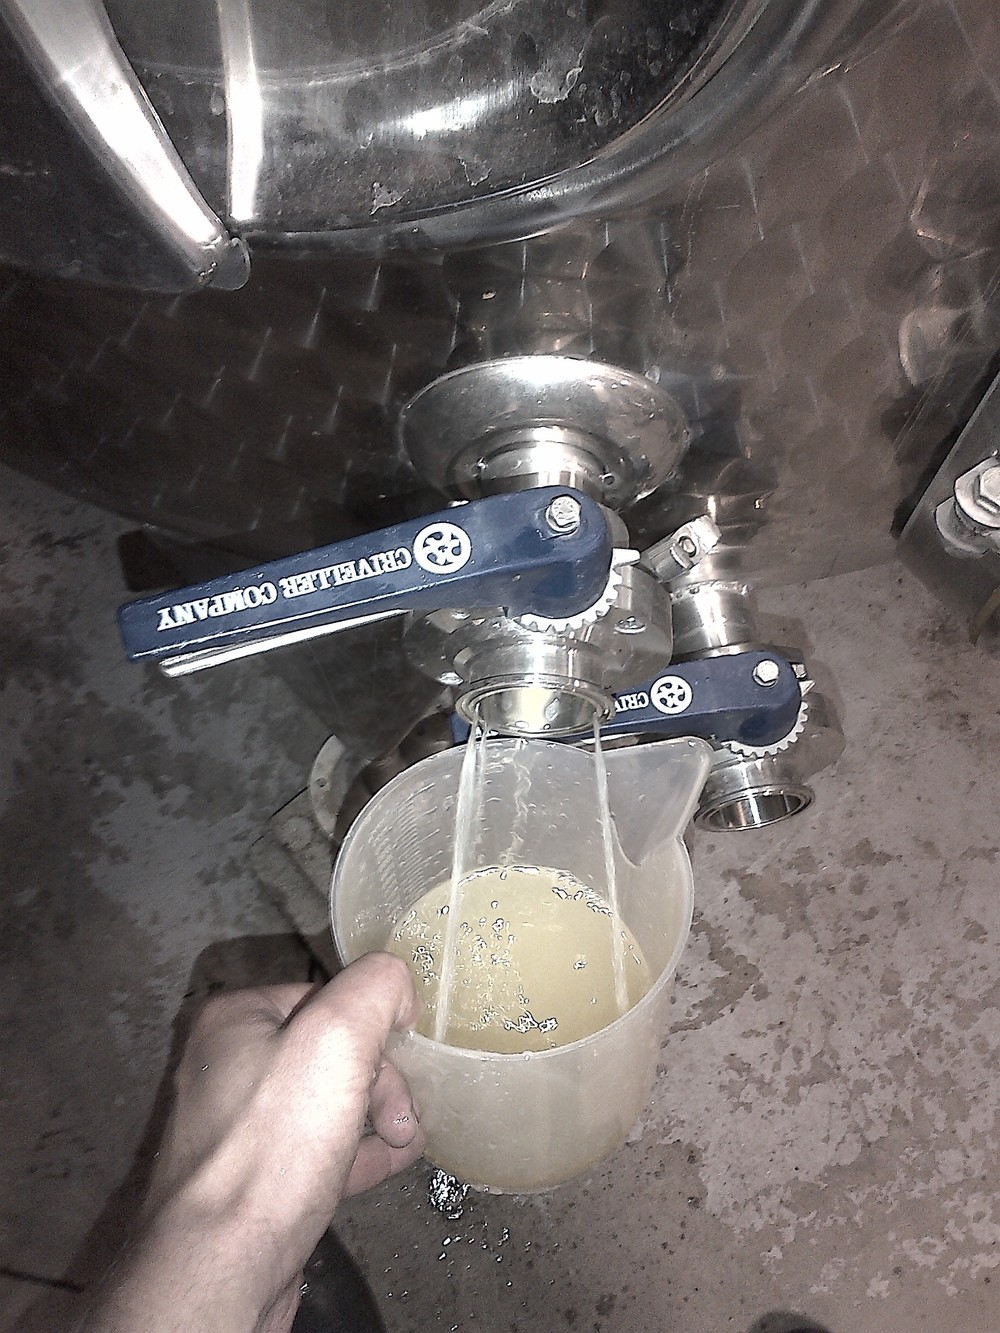 Getting some fermenting Chardonnay juice to test the brix and track fermentation...